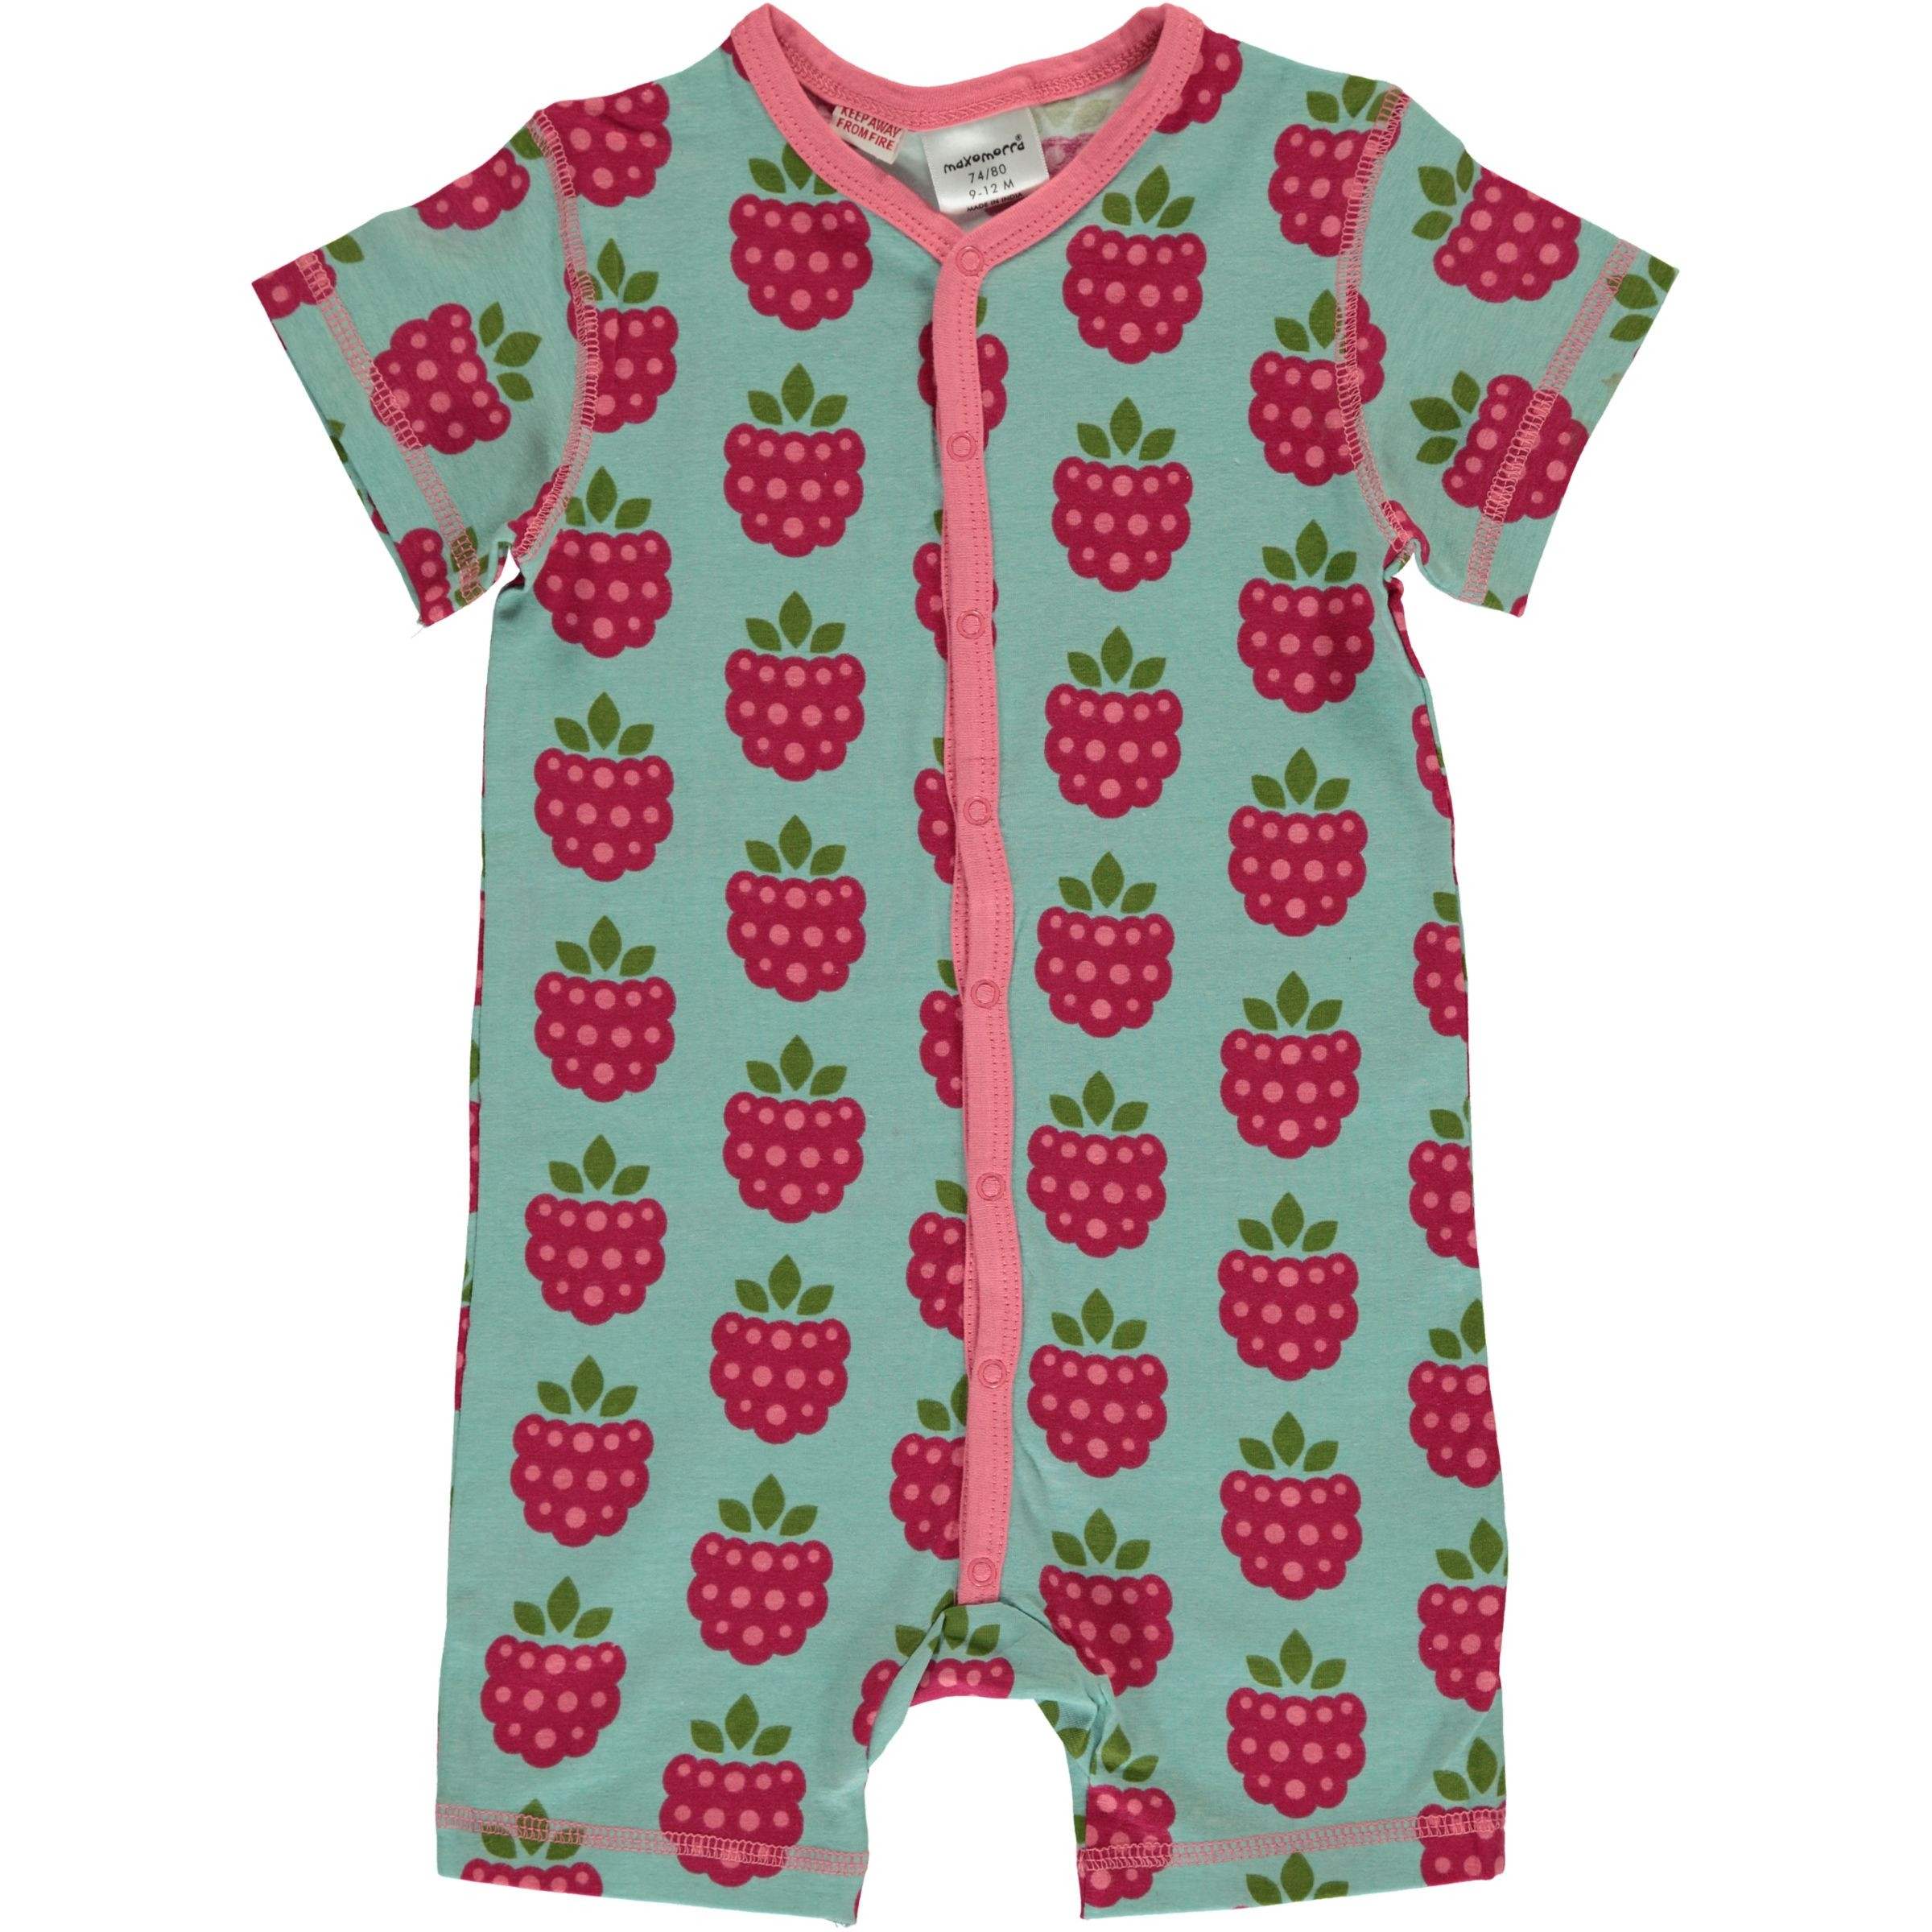 Maxomorra Raspberry Rompersuit Short Sleeved